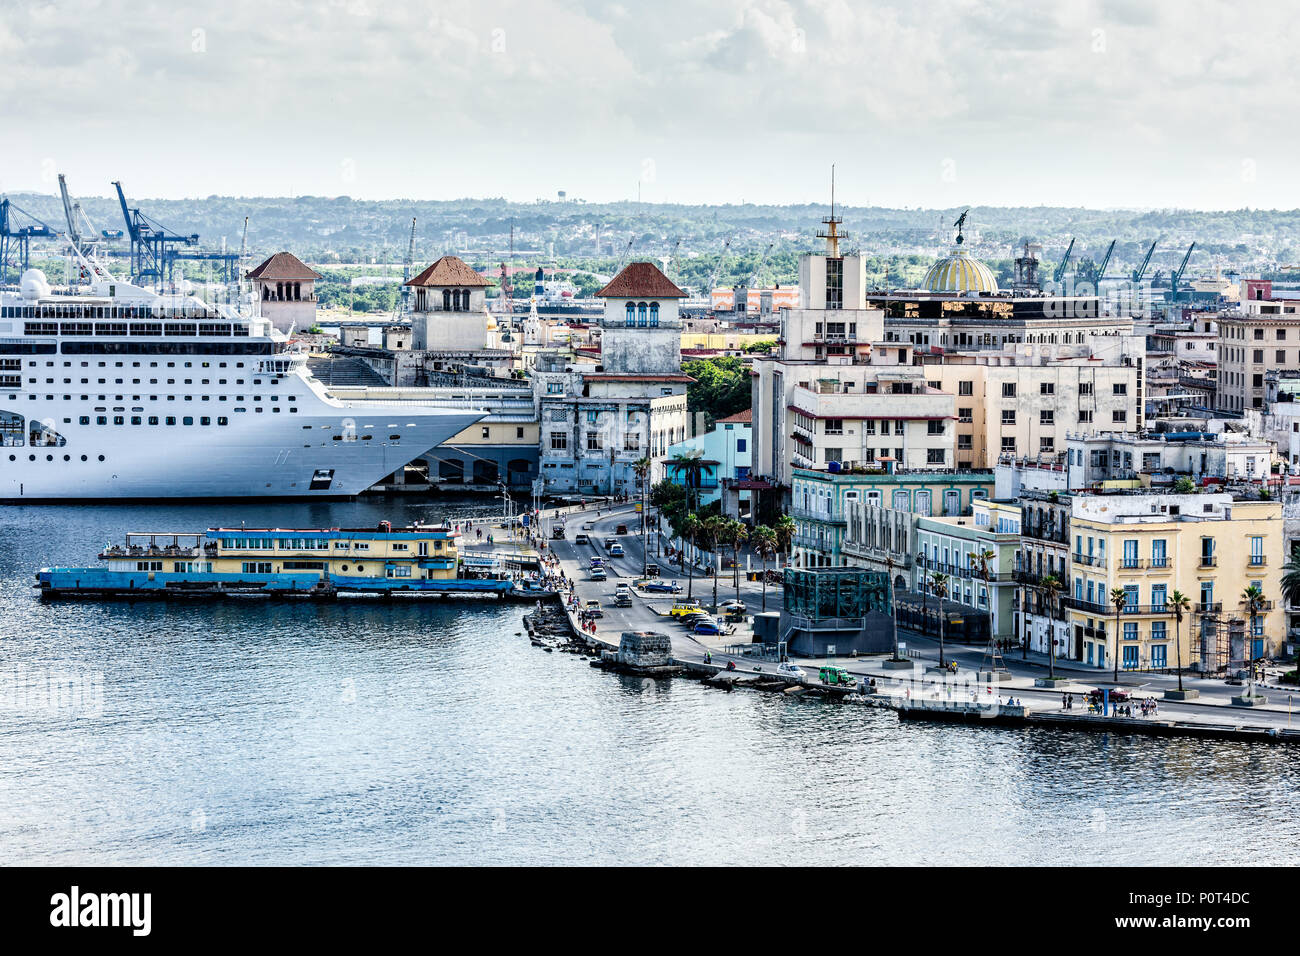 City panorama and big cruise ship docked in port of old Havana, Cuba - Stock Image